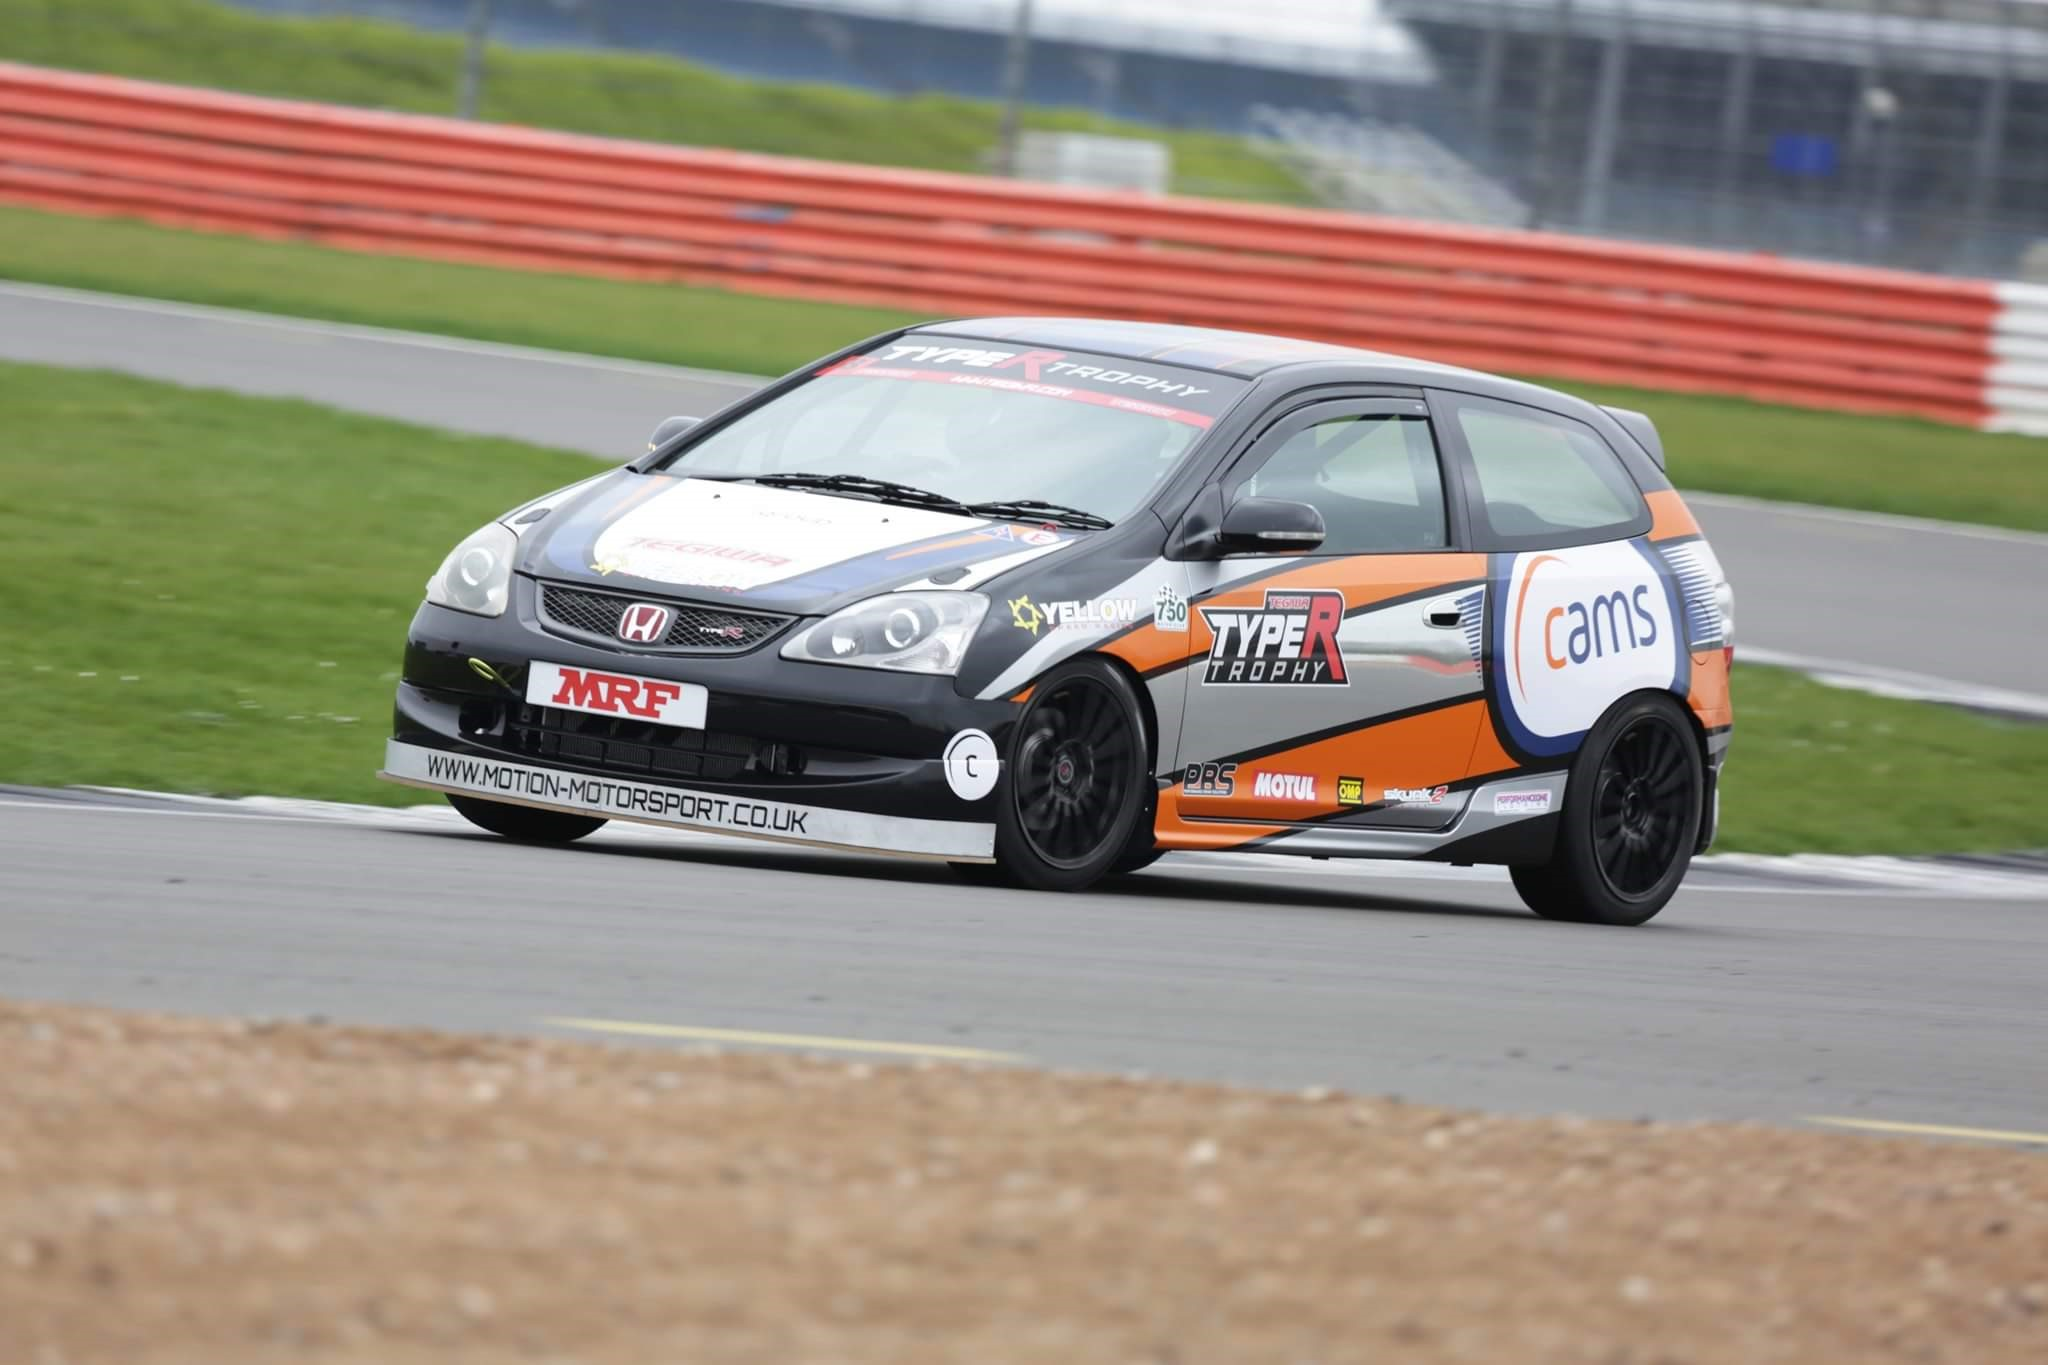 igroup's Up and Coming Driver Jack Leese in the Honda Civic Trophy